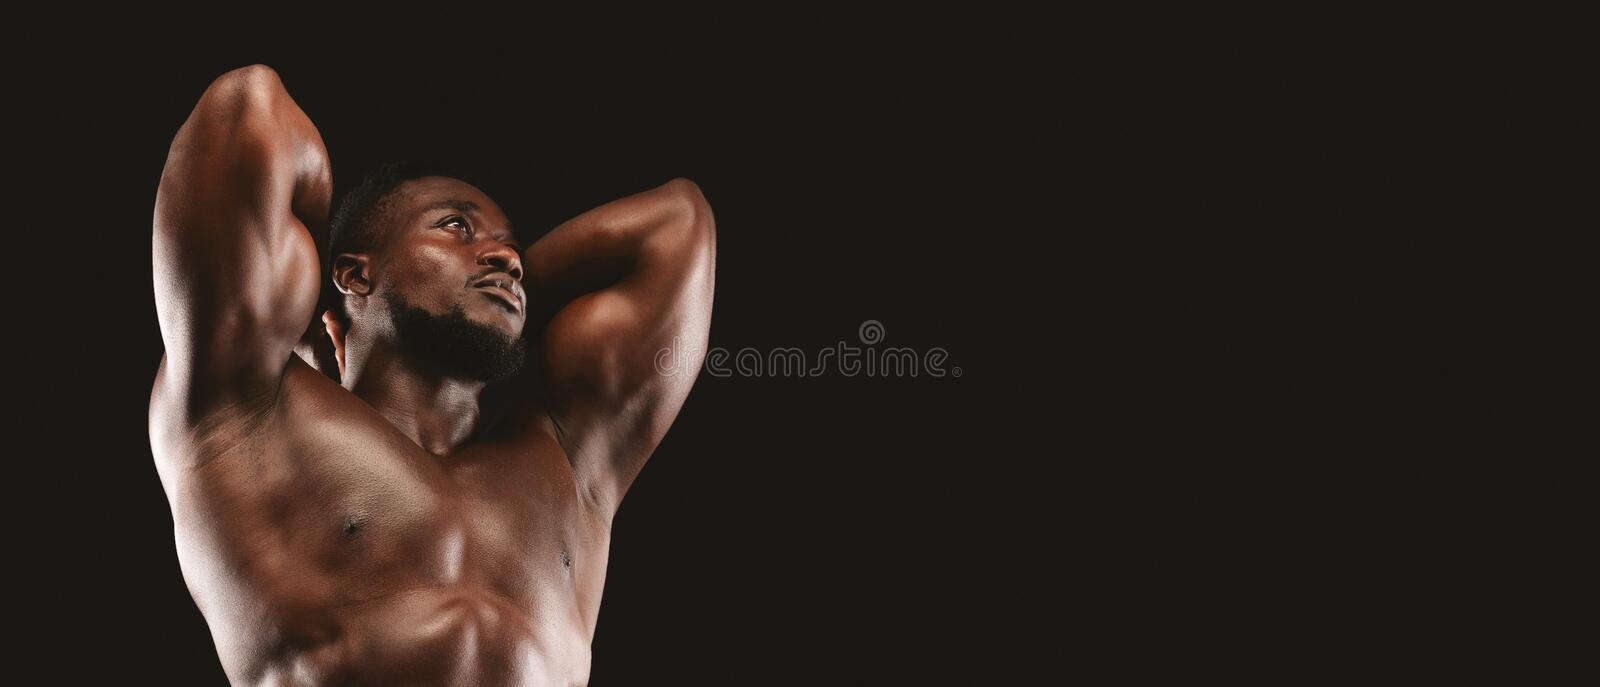 Charismatic fitness model with his hands behind head stock images